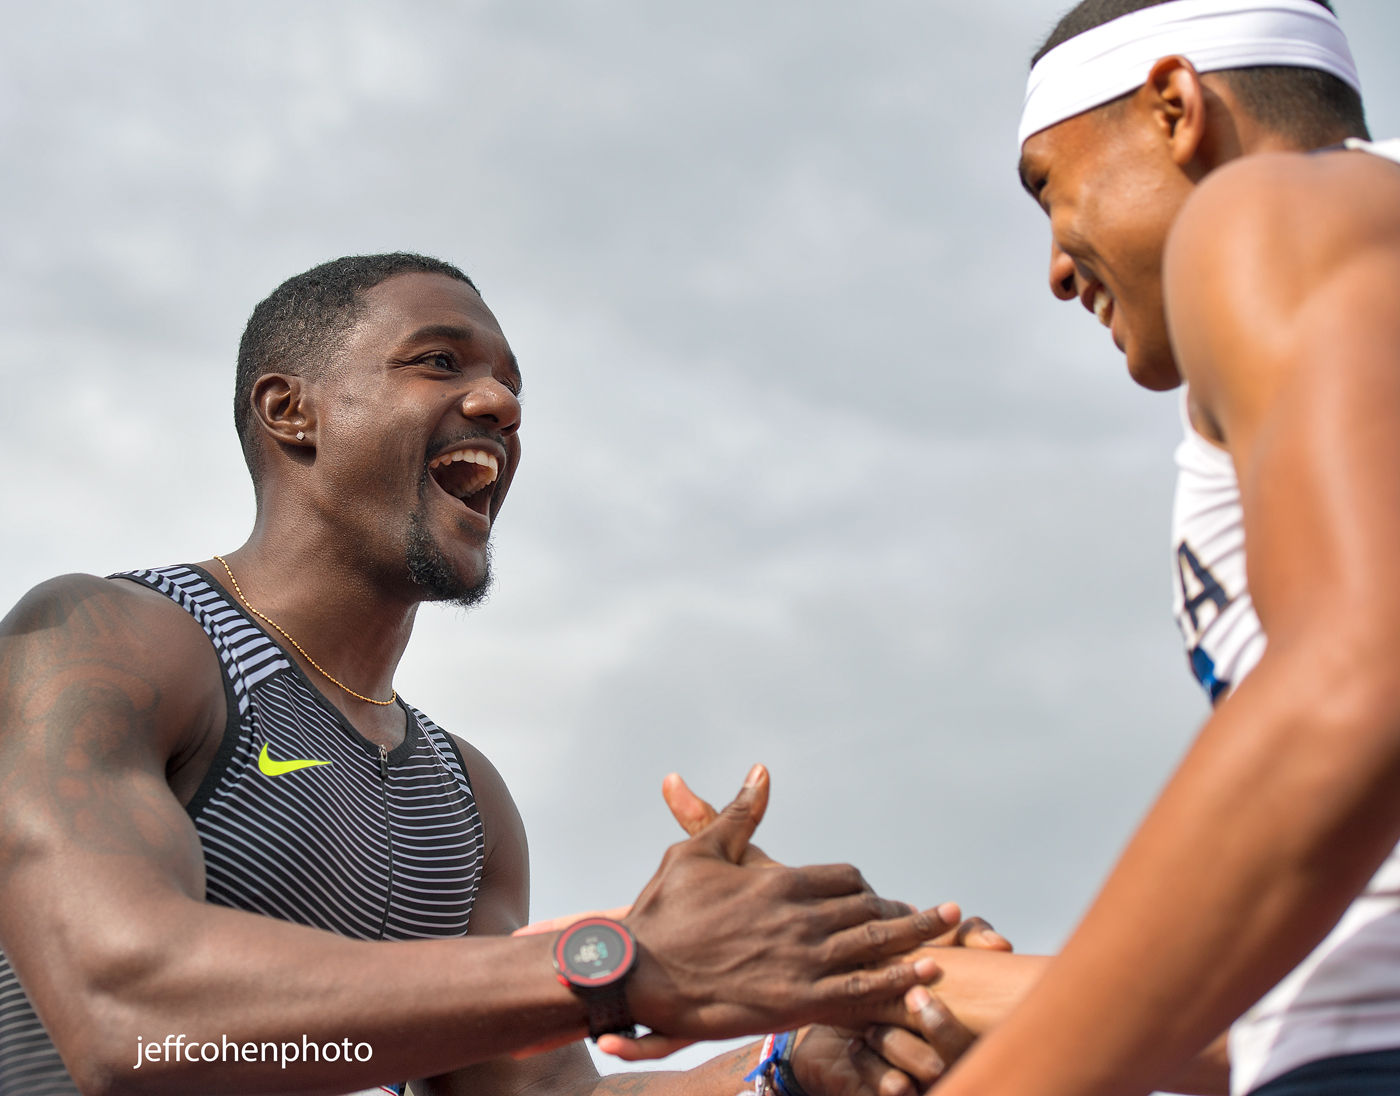 1r2016_oly_trials_day_7_norman_gatlin_200m_jeff_cohen_photo_23419_web.jpg